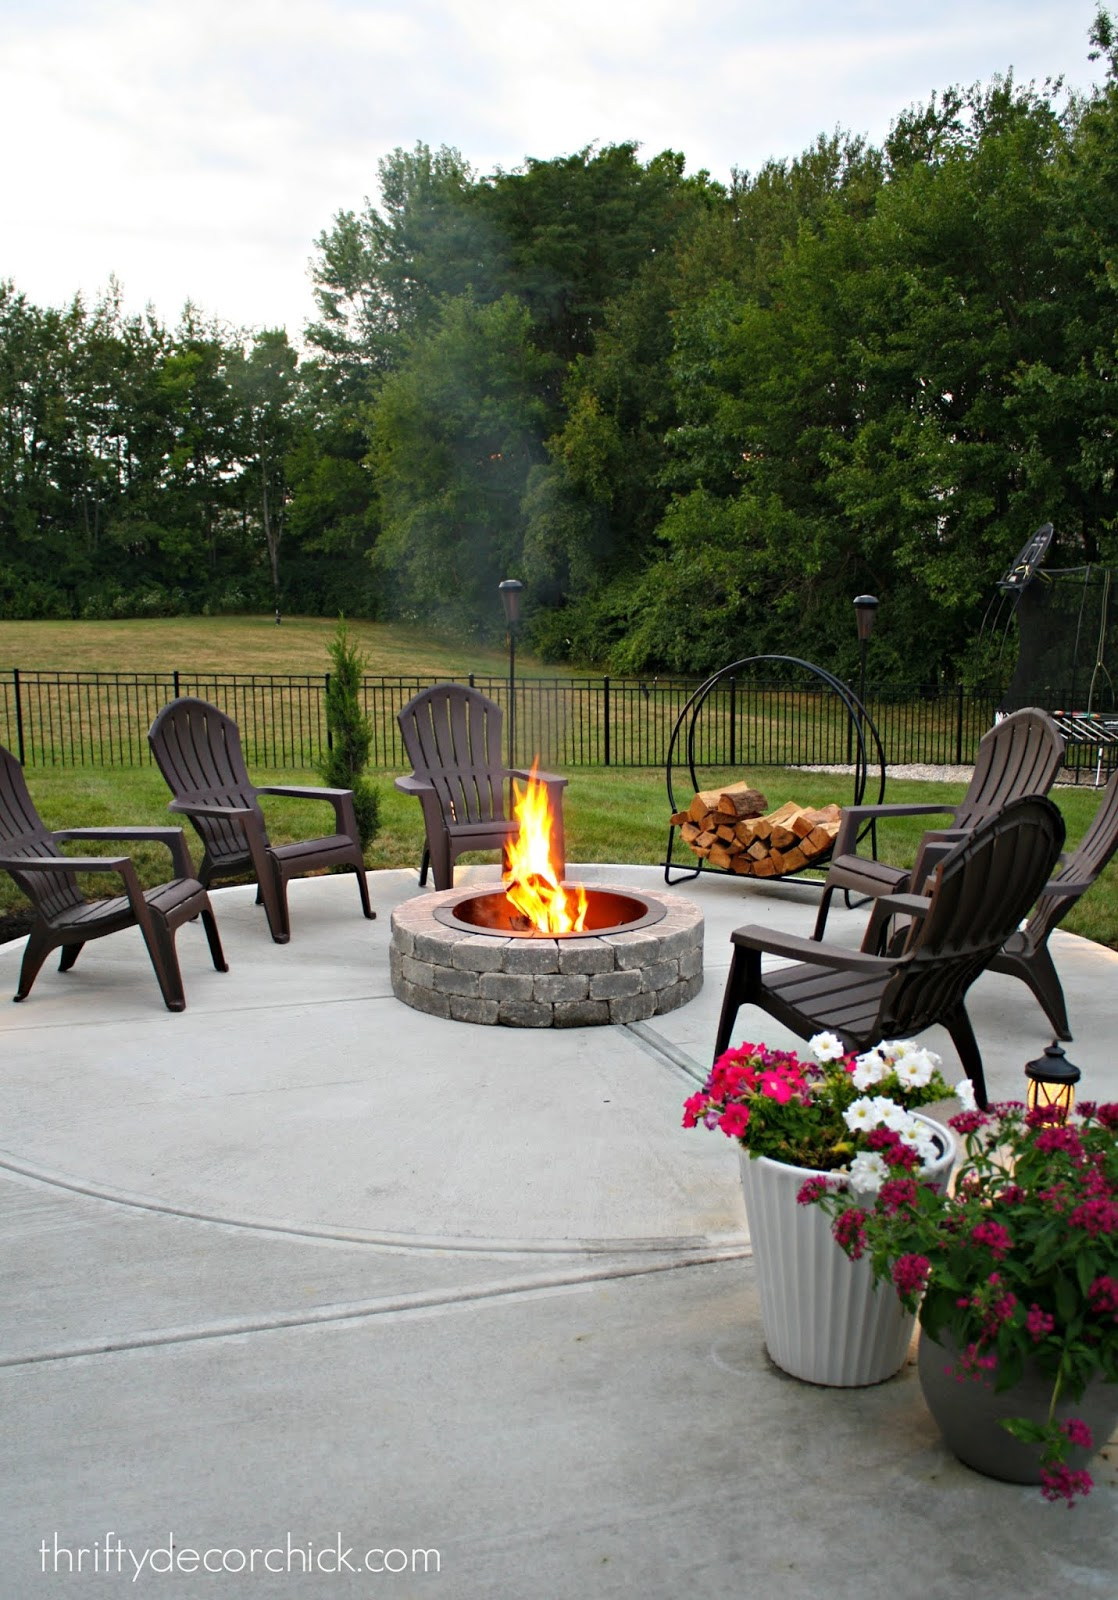 How to build a safe fire pit on a patio